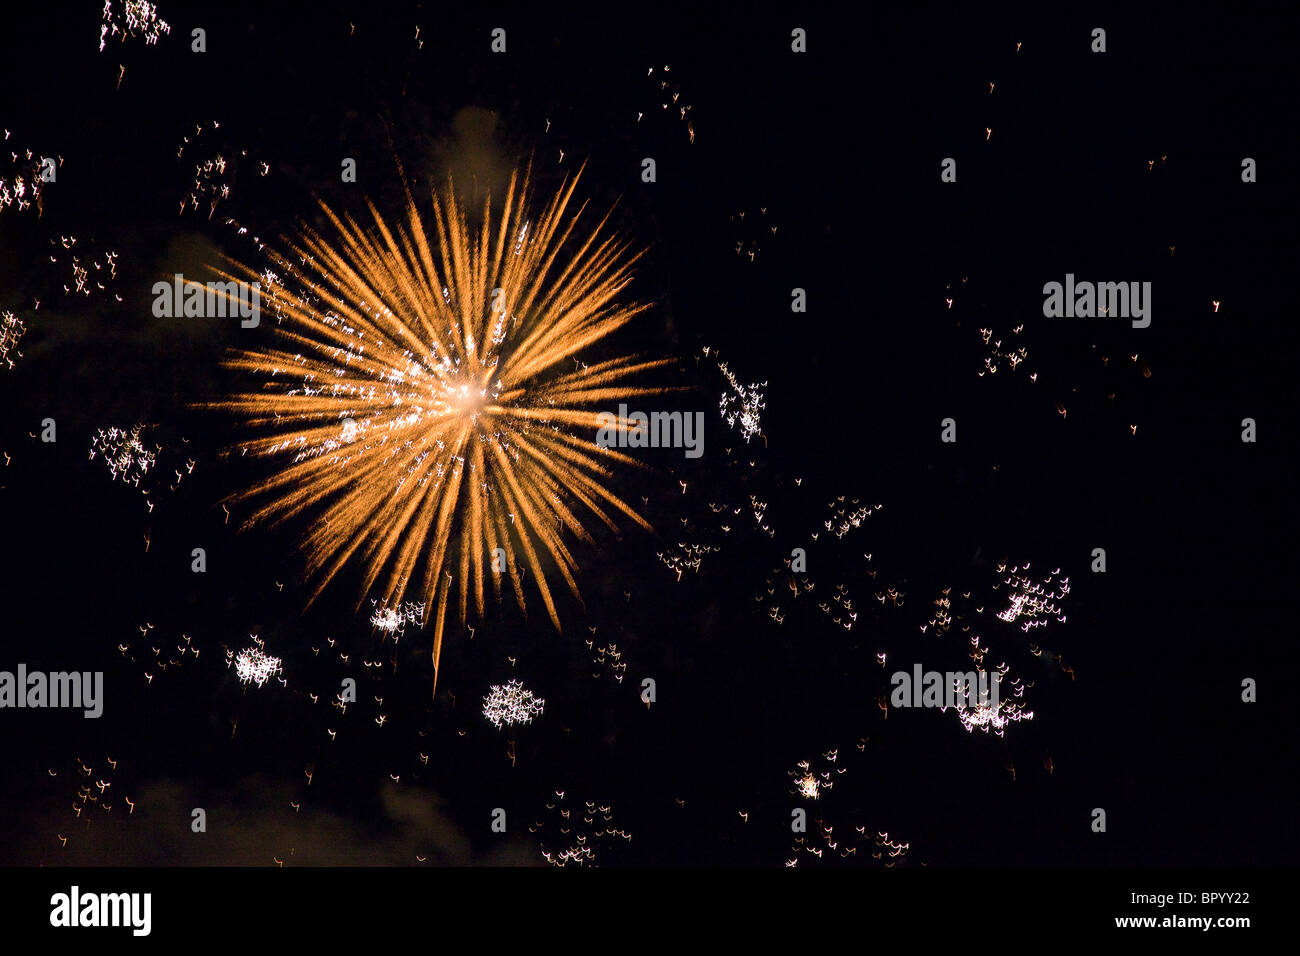 Abstract view of Fire works above the city of Dresden Germany - Stock Image